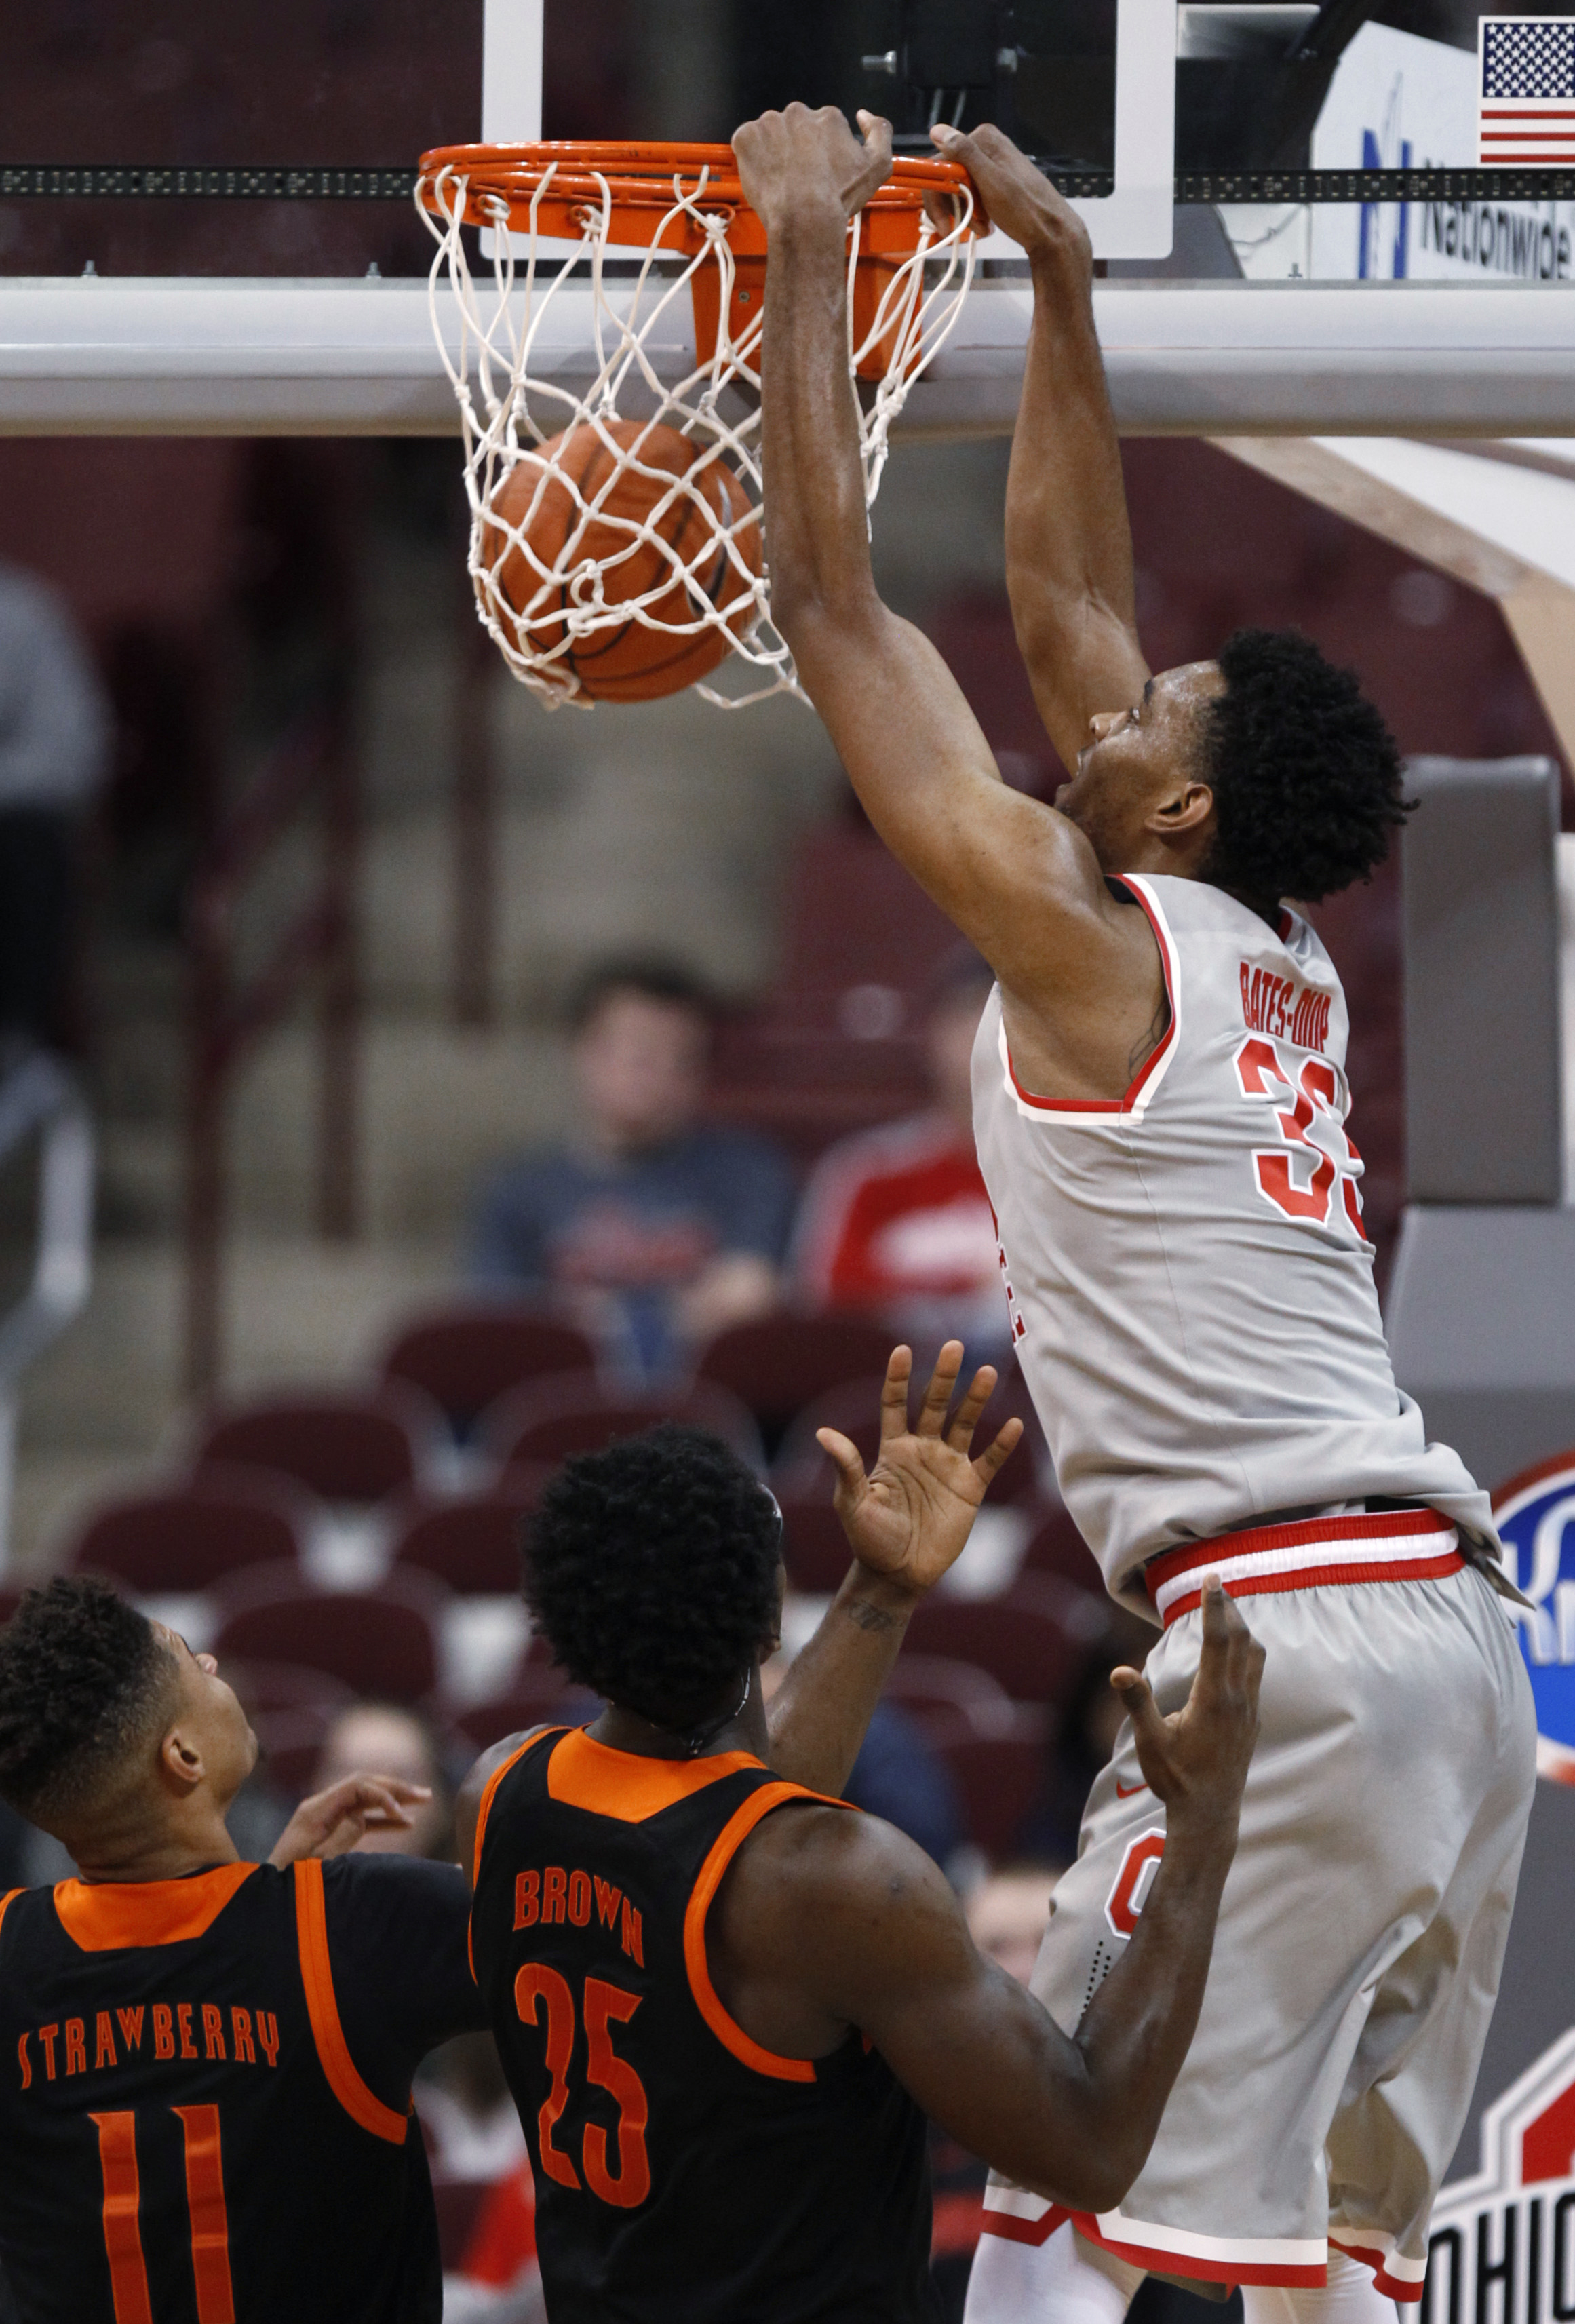 Ohio State's Keita Bates-Diop, right, dunks the ball against Mercer's Jordan Strawberry (11) and Lawrence Brown (25) during the first half of an NCAA college basketball game in Columbus, Ohio, Tuesday, Dec. 22, 2015. (AP Photo/Paul Vernon)